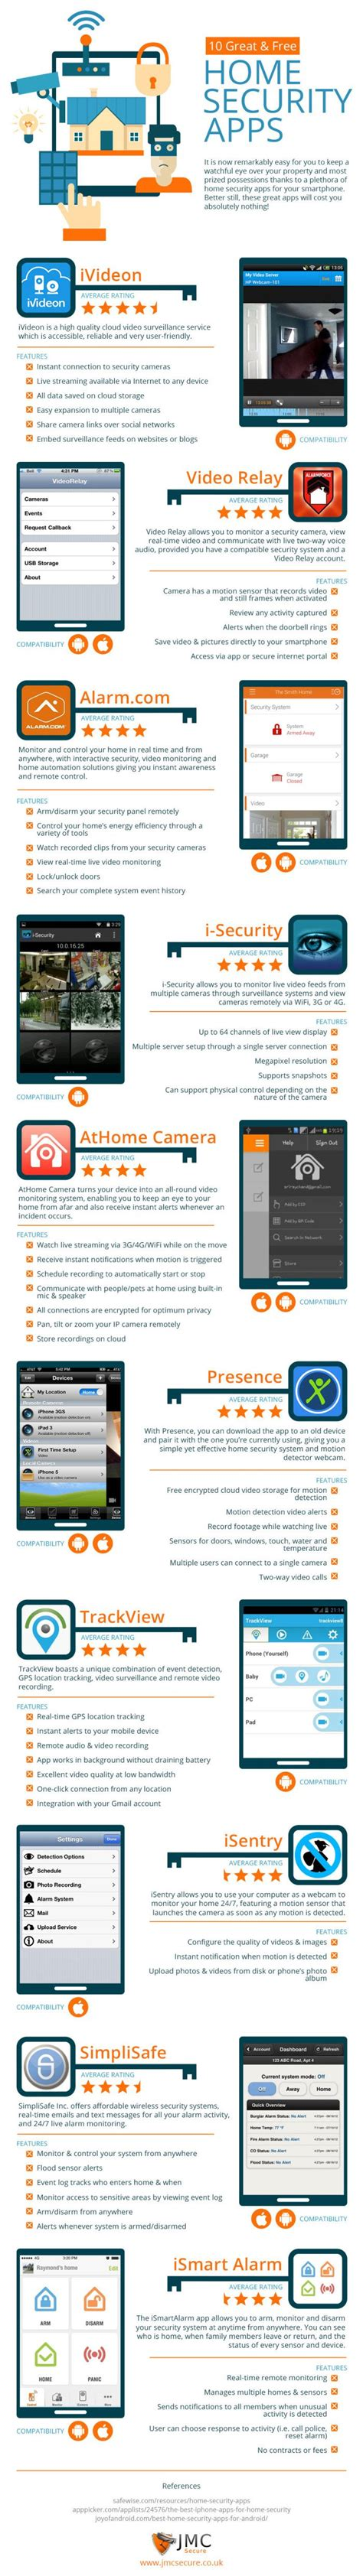 free home security apps here are 10 of the best infographic